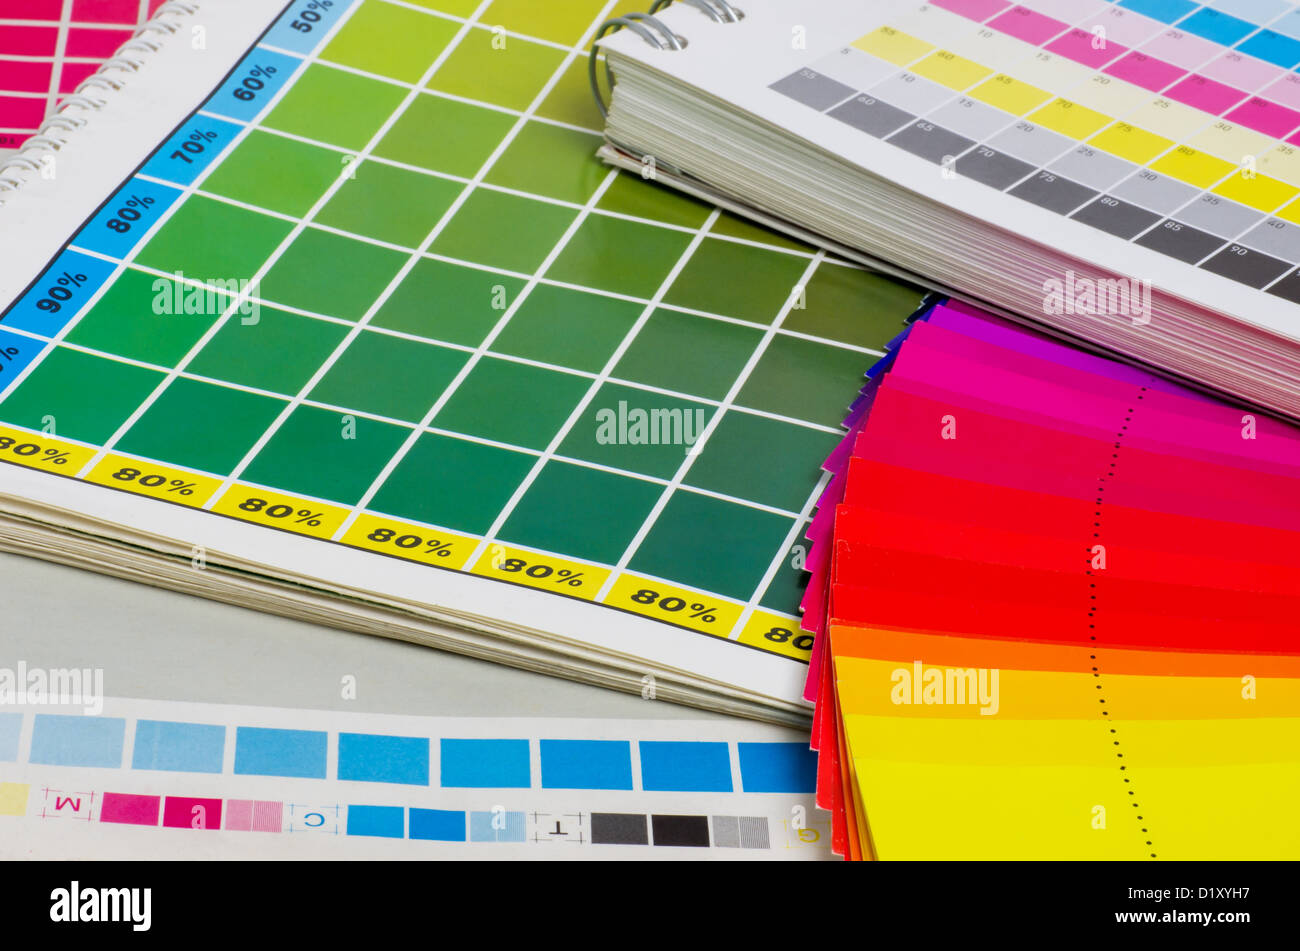 color guide and color fan - Stock Image